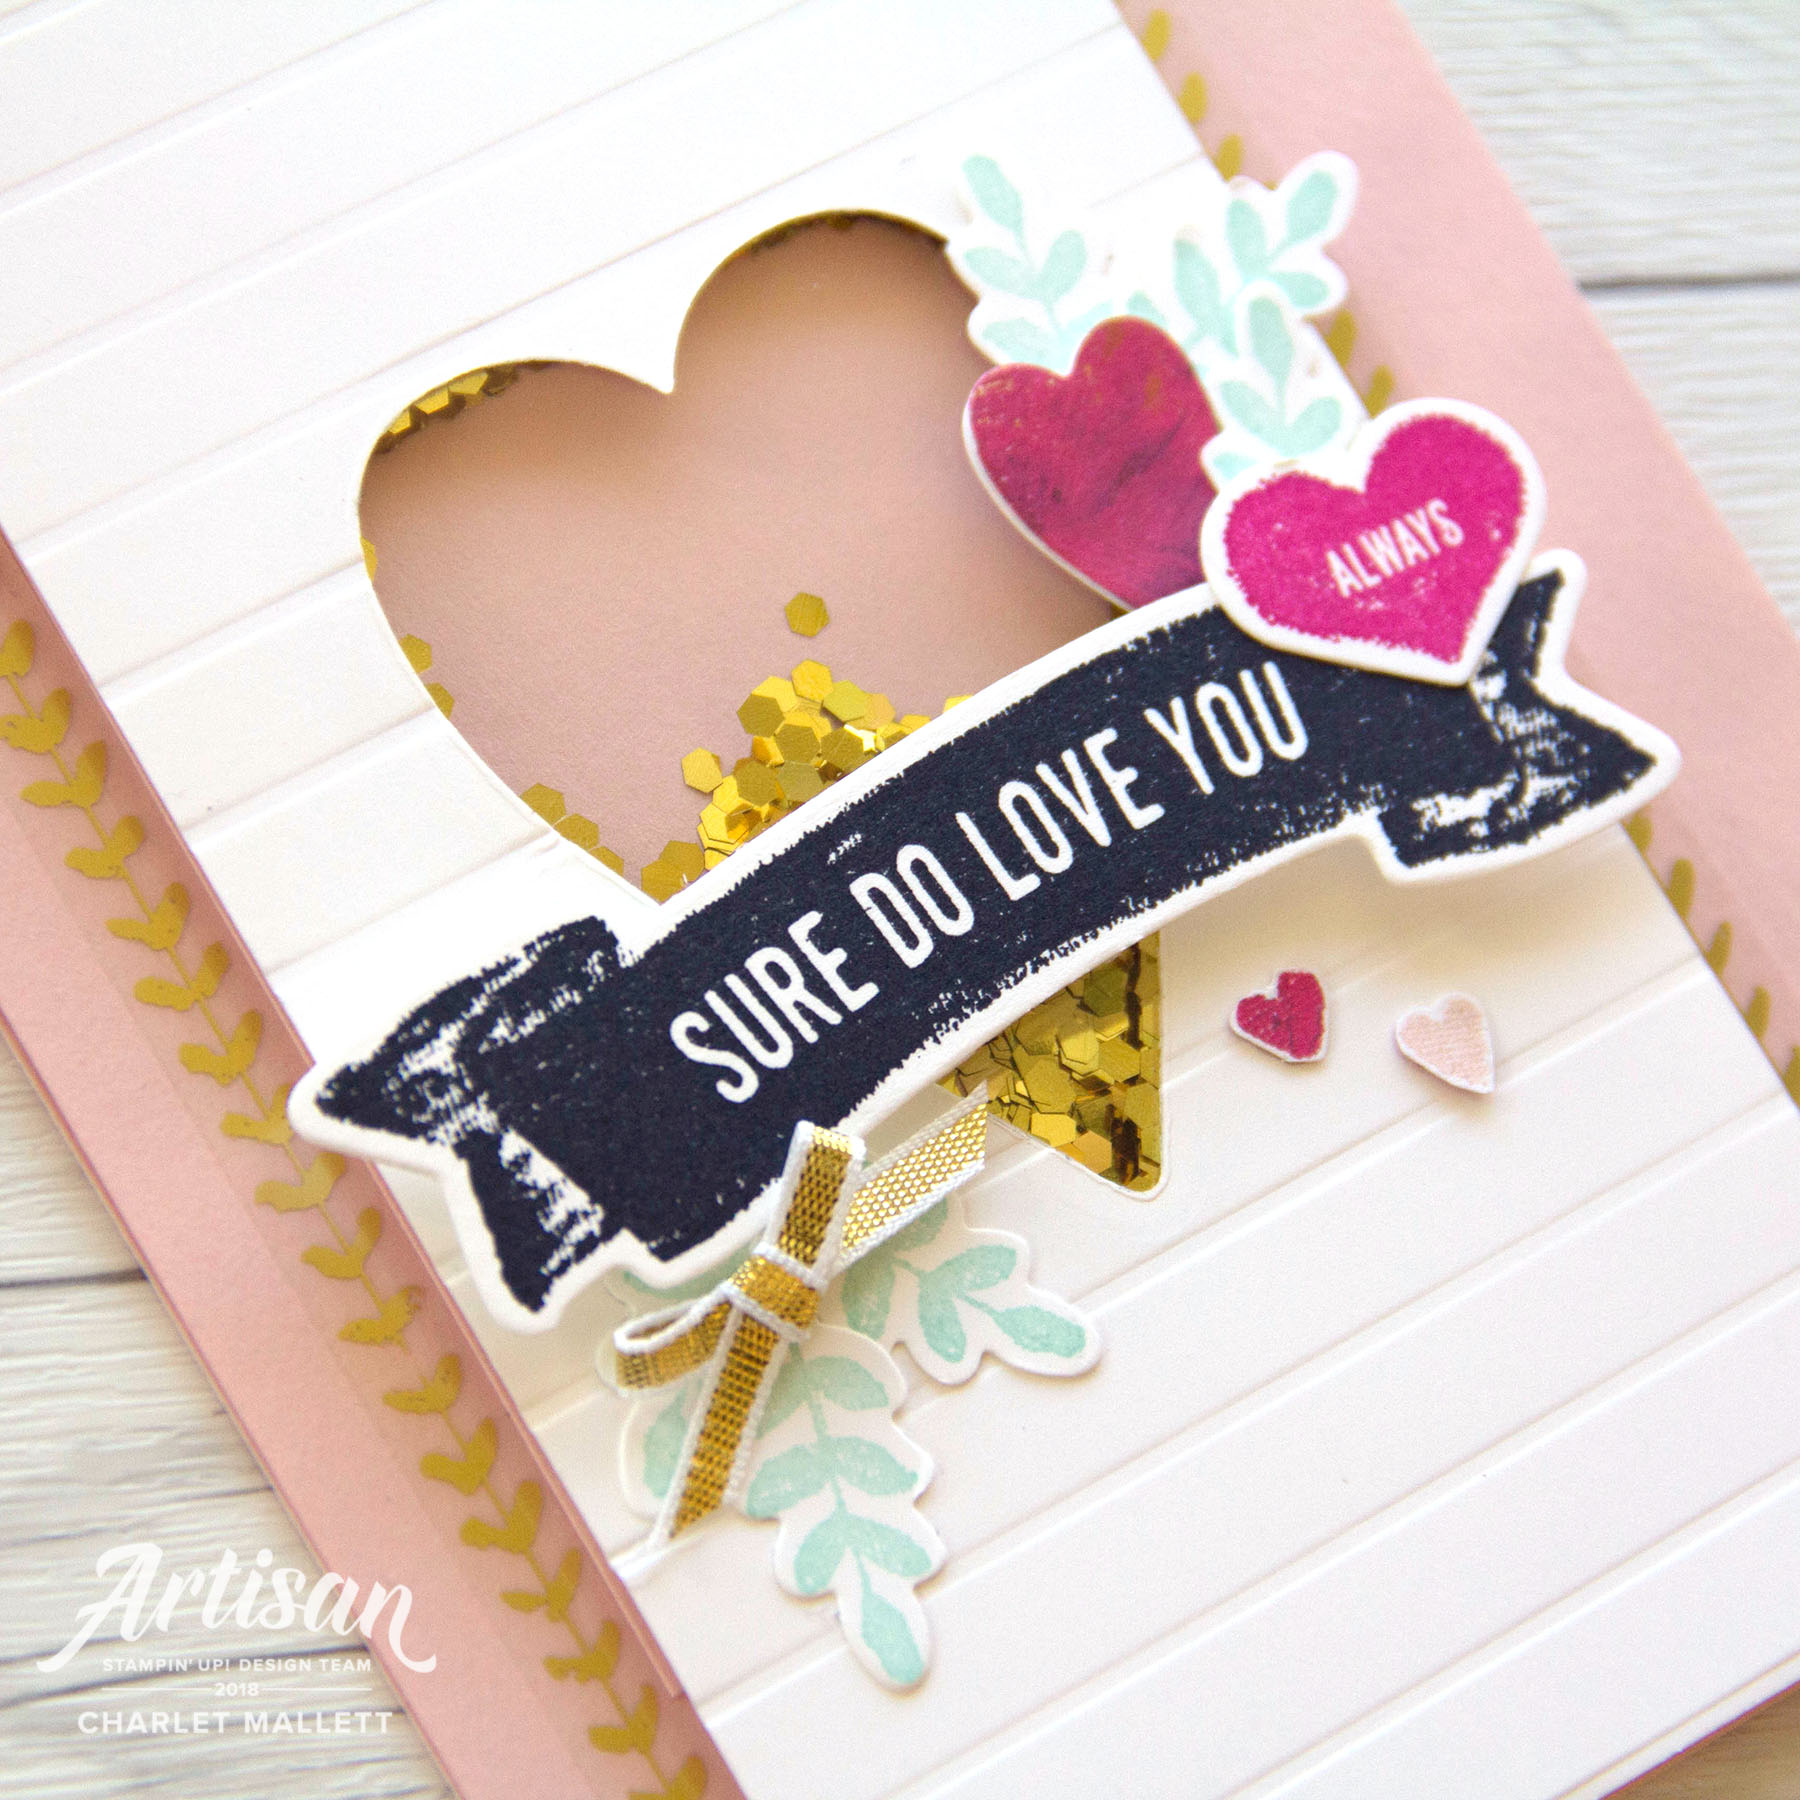 Sure Do Love You Always shaker card - Charlet Mallett, Stampin' Up! 2018 Artisan Design Team